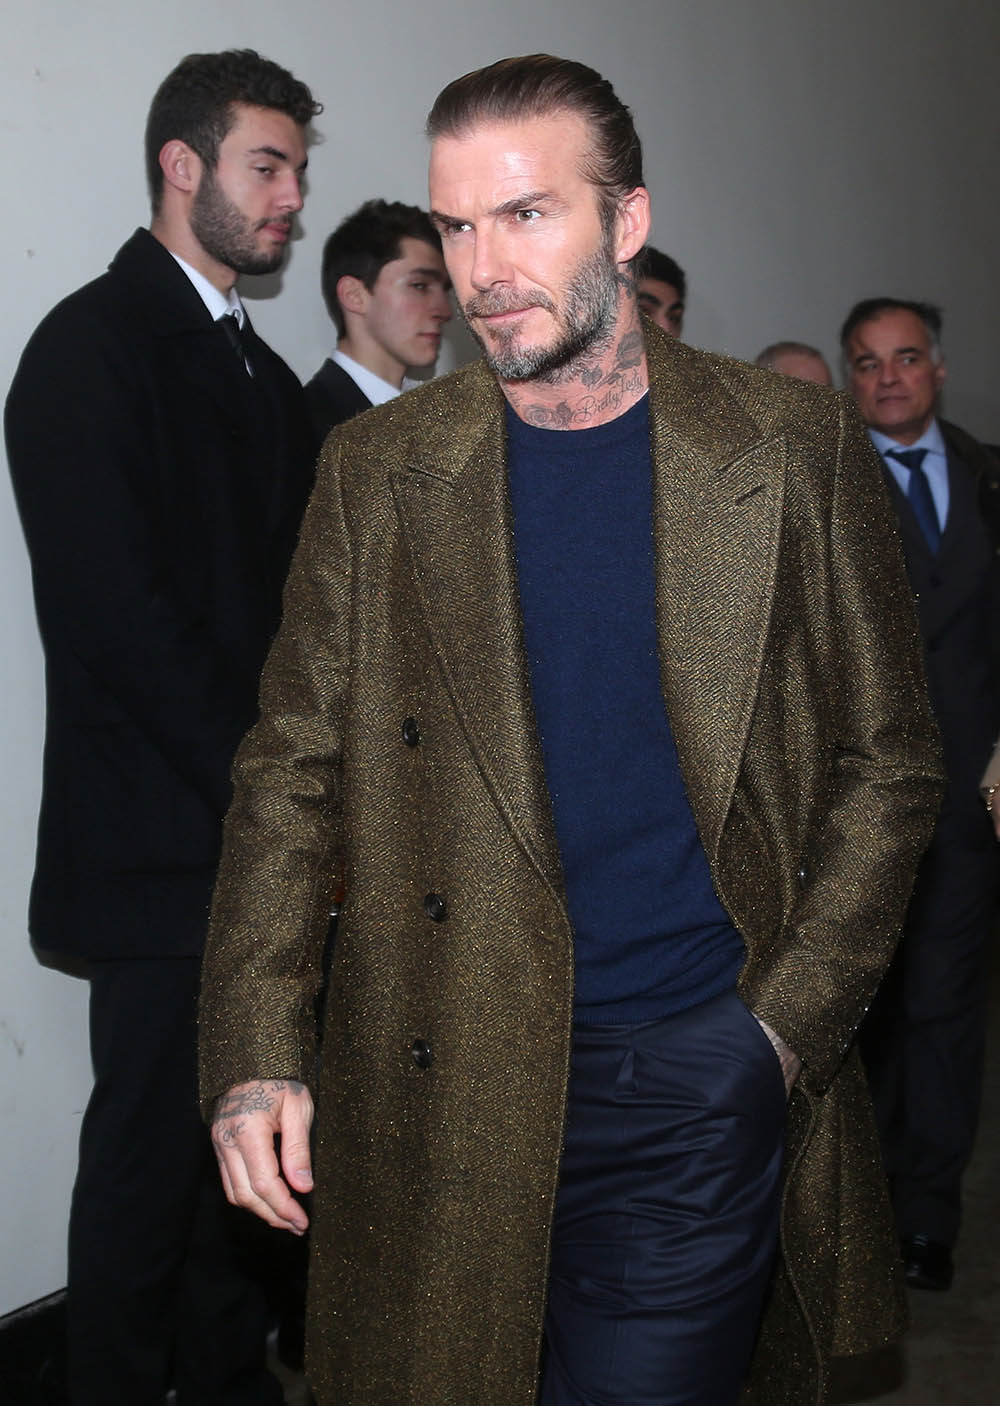 David Beckham Attends The Louis Vuitton Menswear Fall